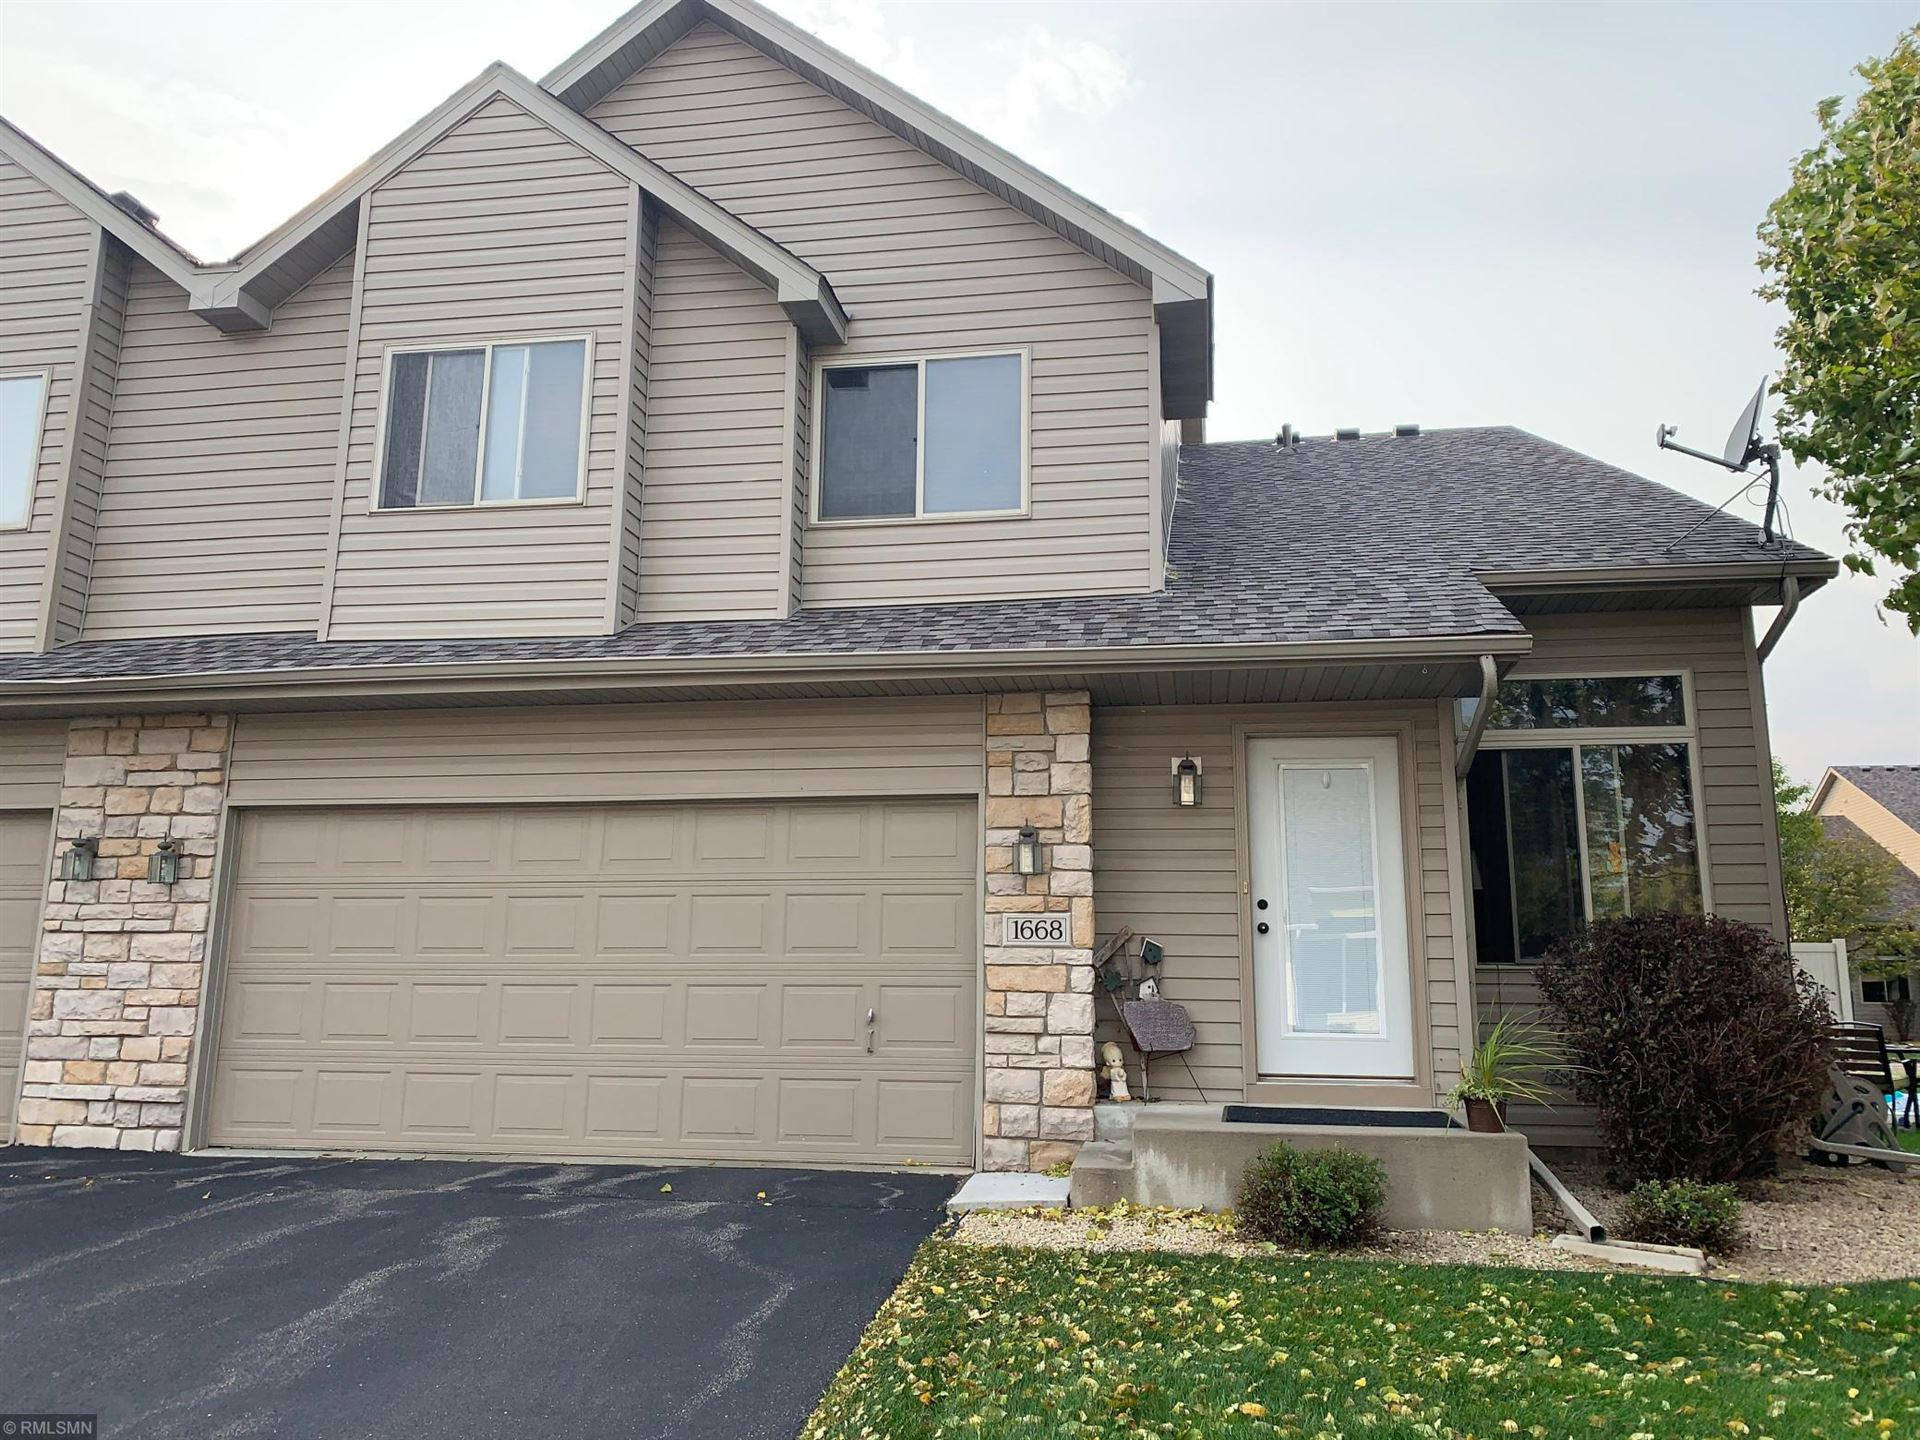 1668 Lexington Lane, Shakopee, MN 55379 - MLS#: 5674685